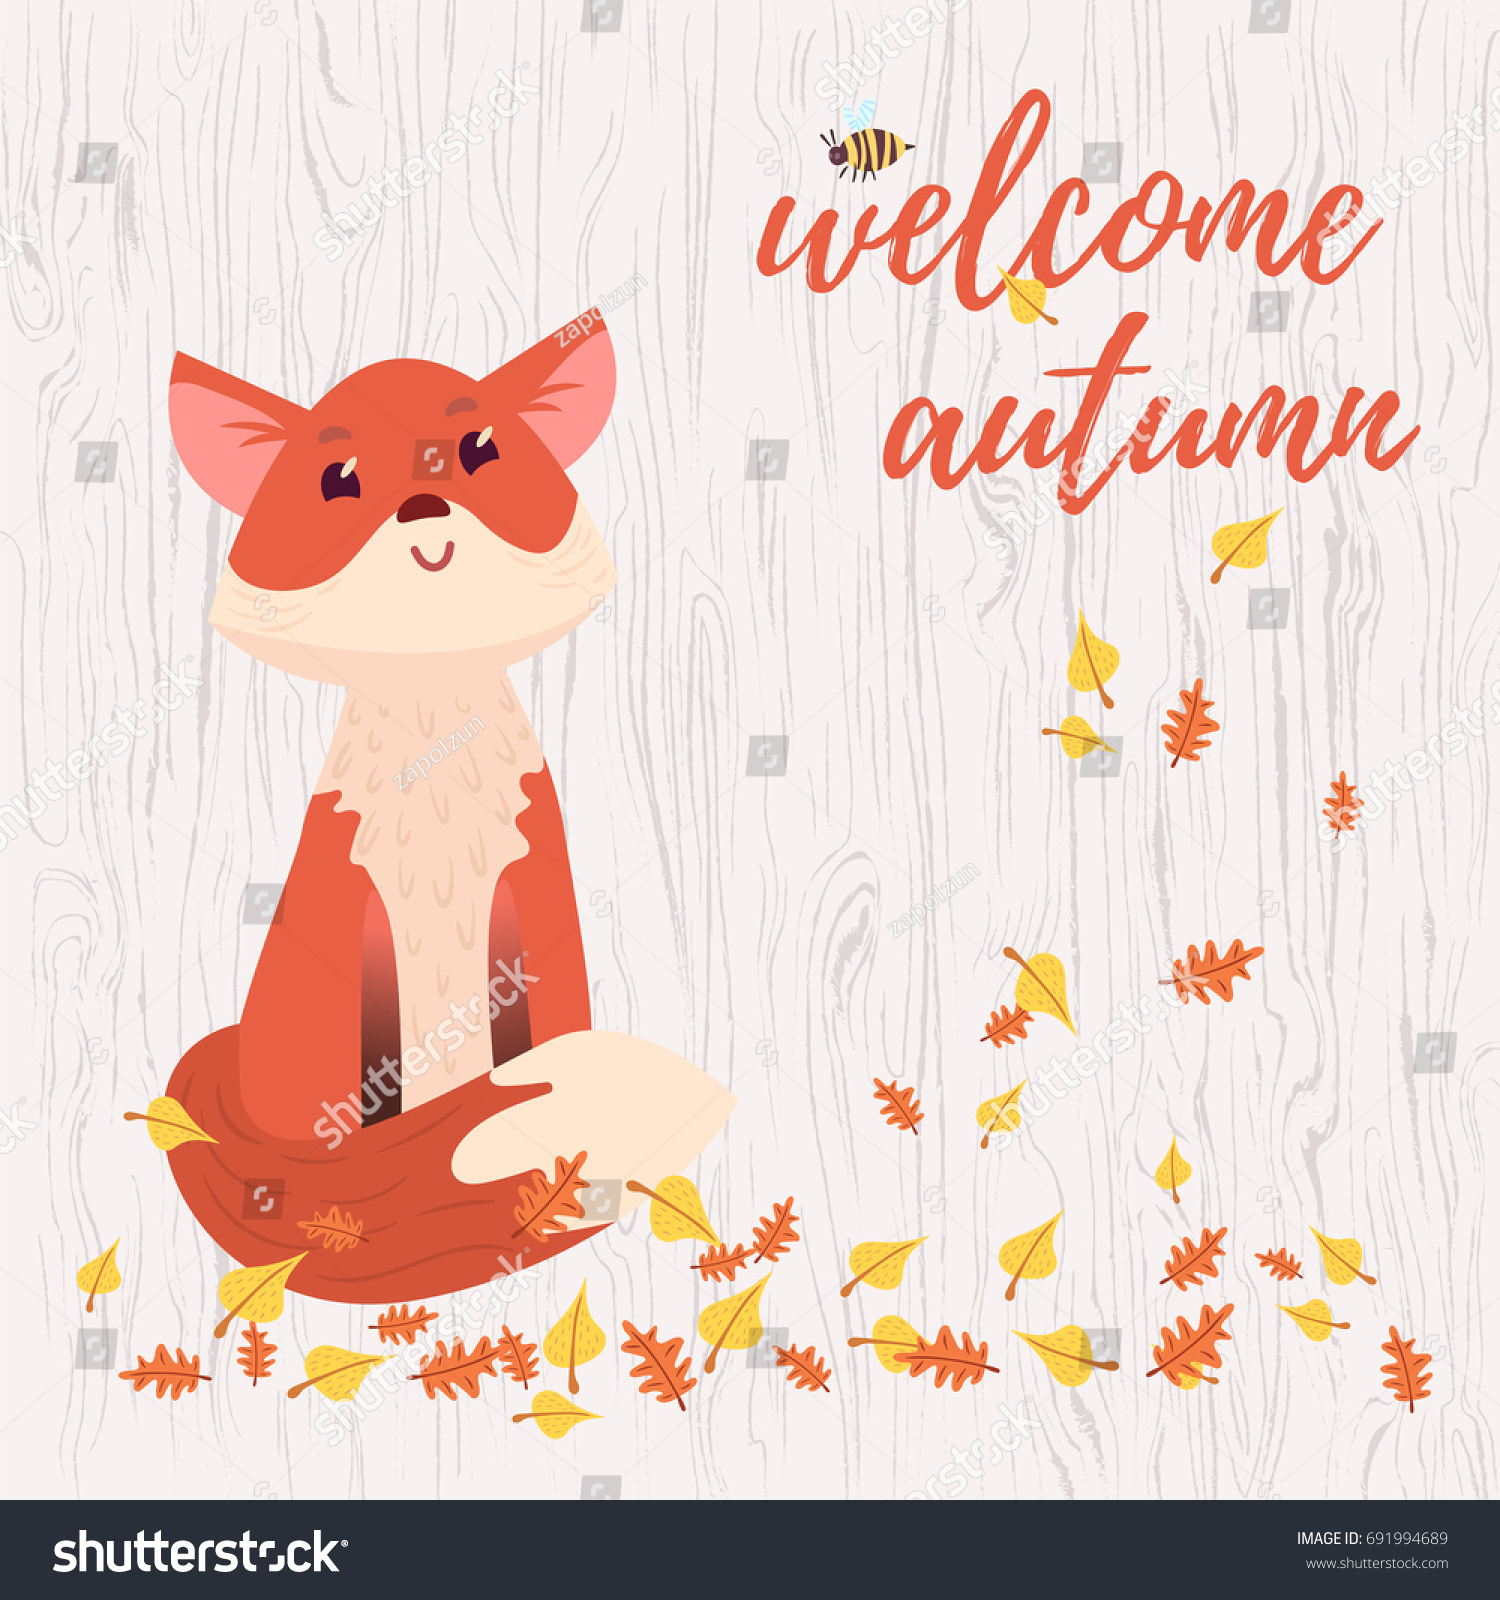 Cute Welcome Autumn Greeting Card Stock Vector Royalty Free Mom N Bab Sweater Orange Fox With Leaves And Bee On Light Gray Wooden